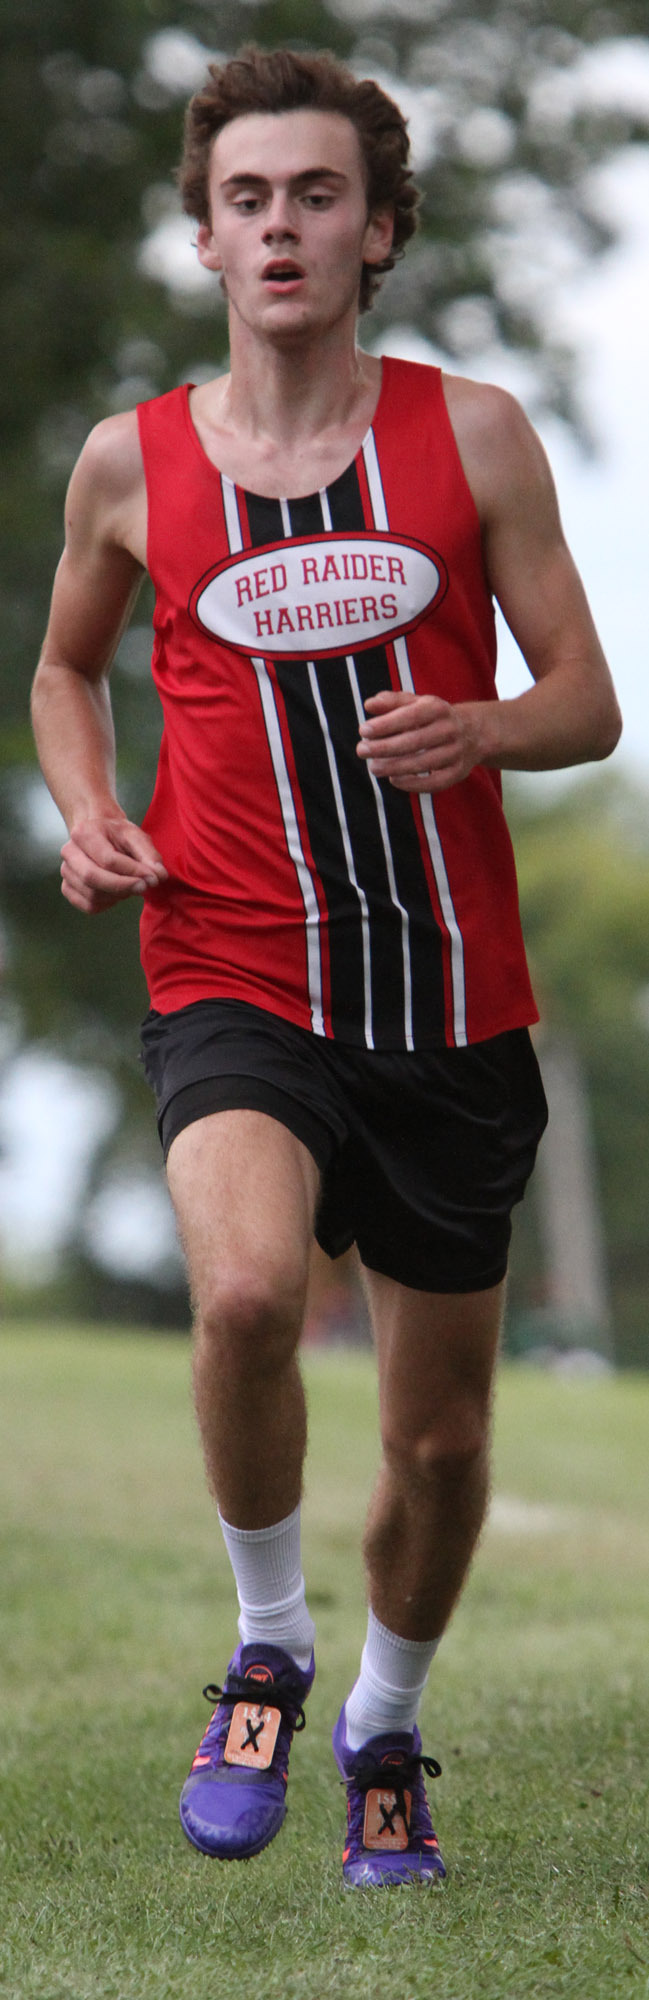 Wauwatosa East's Sam Potter finished second with a time of 16:41.91 in the Menomonee Falls Coaches Classic cross country race Aug. 28 at Rotary Park.